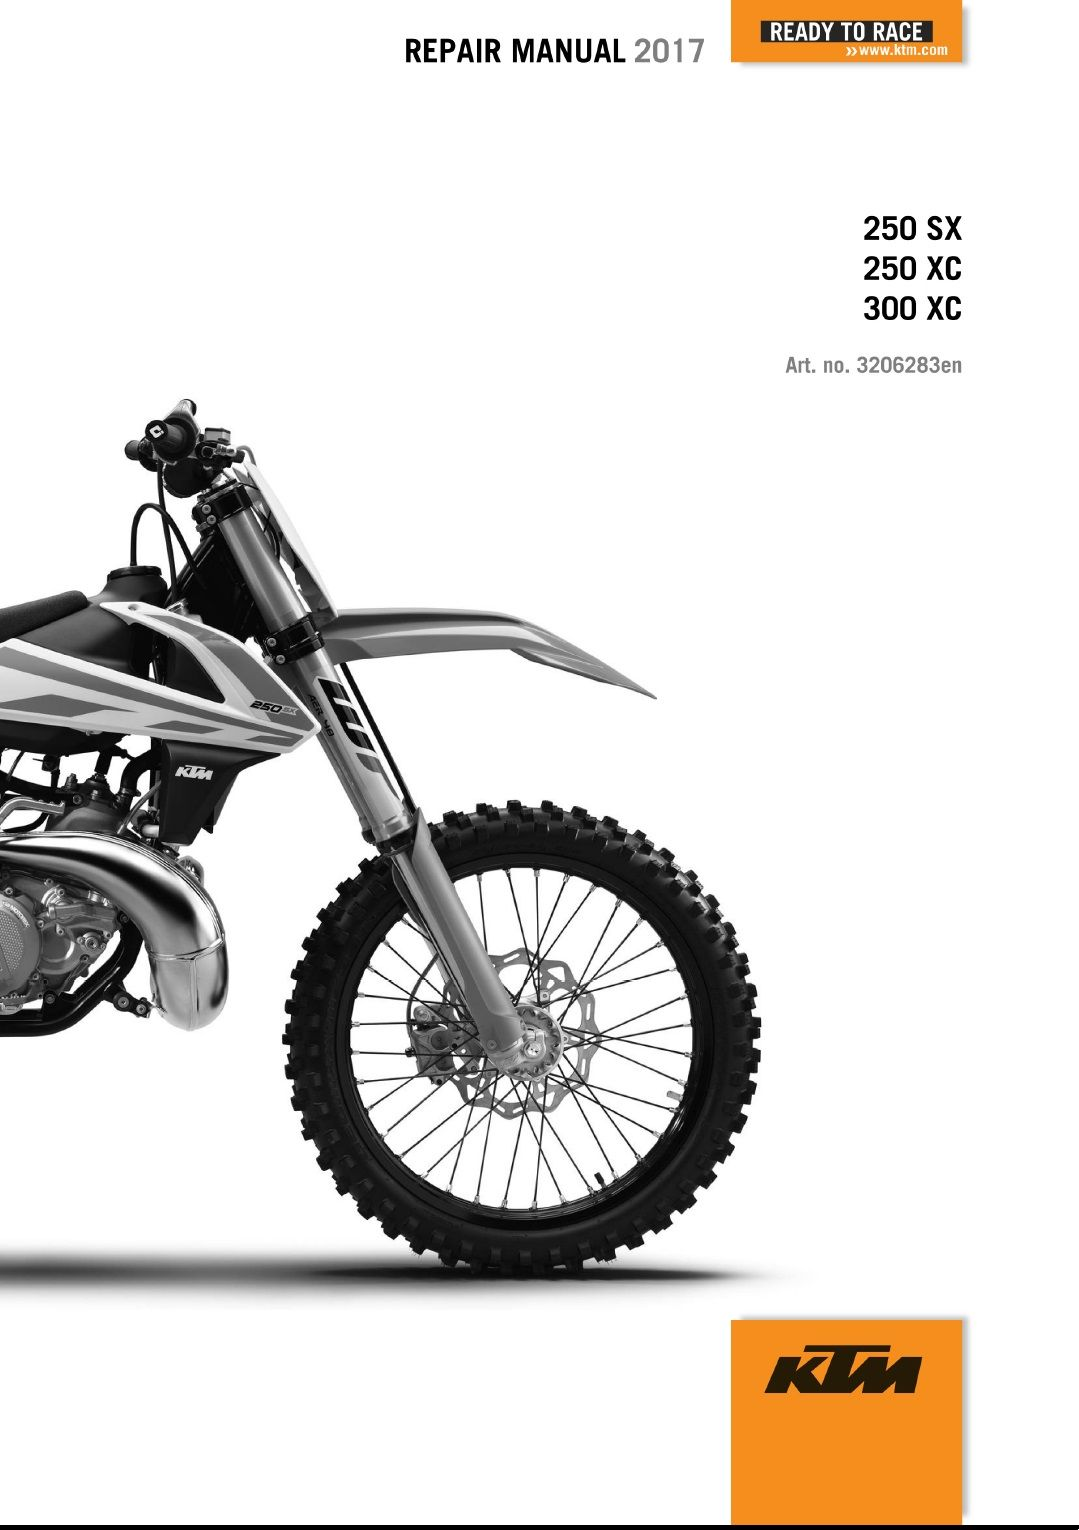 2017 KTM 250-300 SX XC Repair Manual 2017 KTM 250-300 SX XC